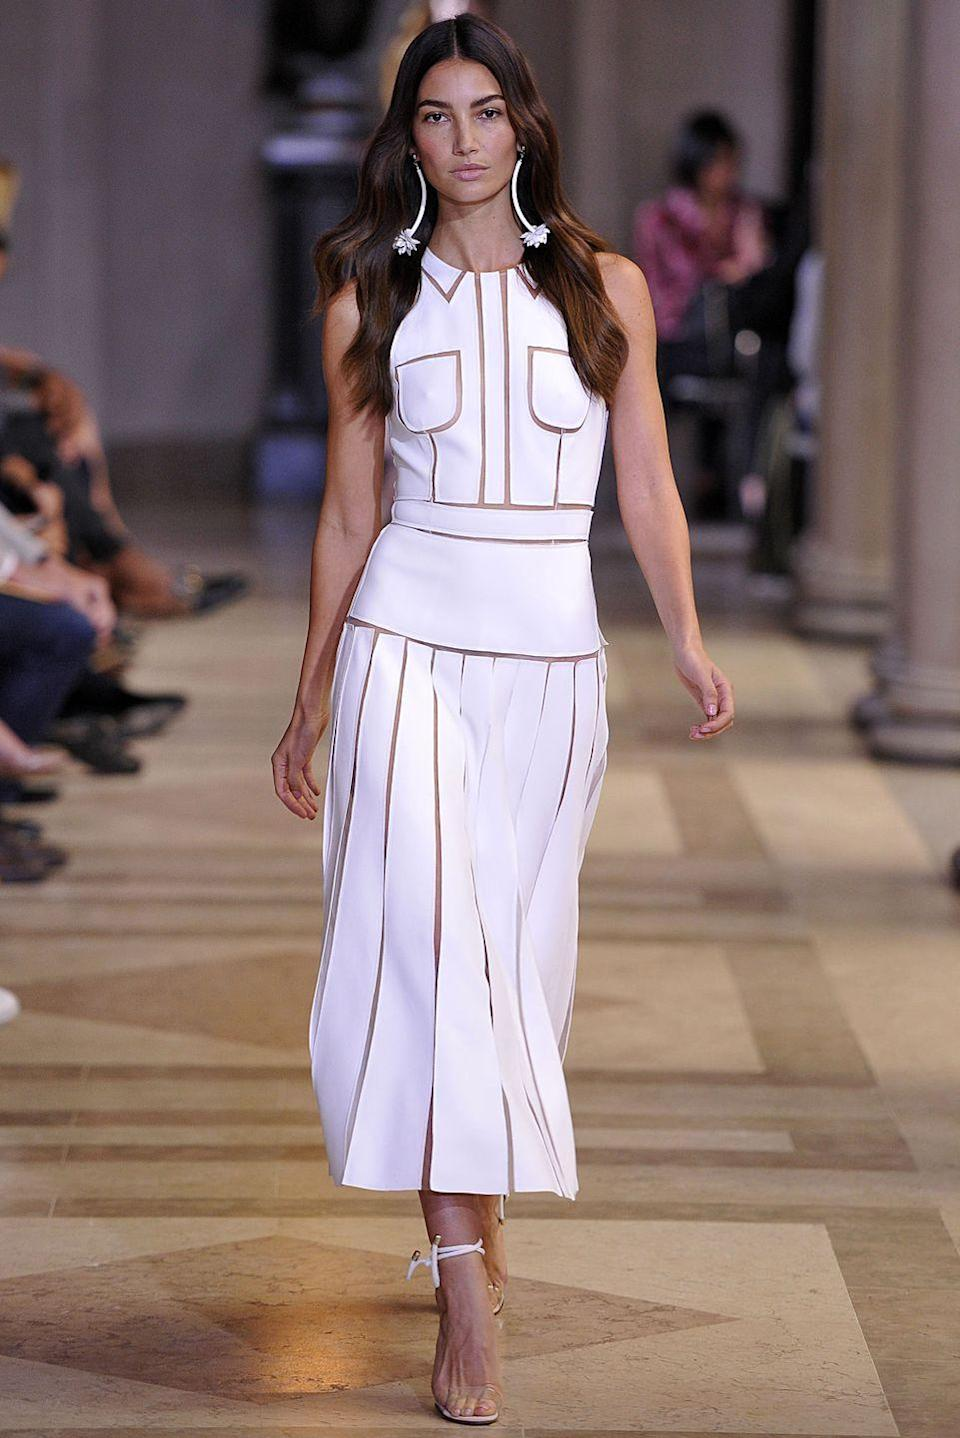 """<p>Aldridge was at her school carnival when she was discovered at the age of 16, according to <em><a href=""""https://www.tatler.com/article/lily-aldridge-red-hot-mama"""" rel=""""nofollow noopener"""" target=""""_blank"""" data-ylk=""""slk:Tatler"""" class=""""link rapid-noclick-resp"""">Tatler</a></em>. Her first job was a campaign for Abercrombie & Fitch.</p><p>Since then, Aldridge has appeared in campaigns for Rag & Bone, Bobbi Brown, Coach, and been named a Victoria's Secret Angel, walking in the brand's runway show each year.</p>"""